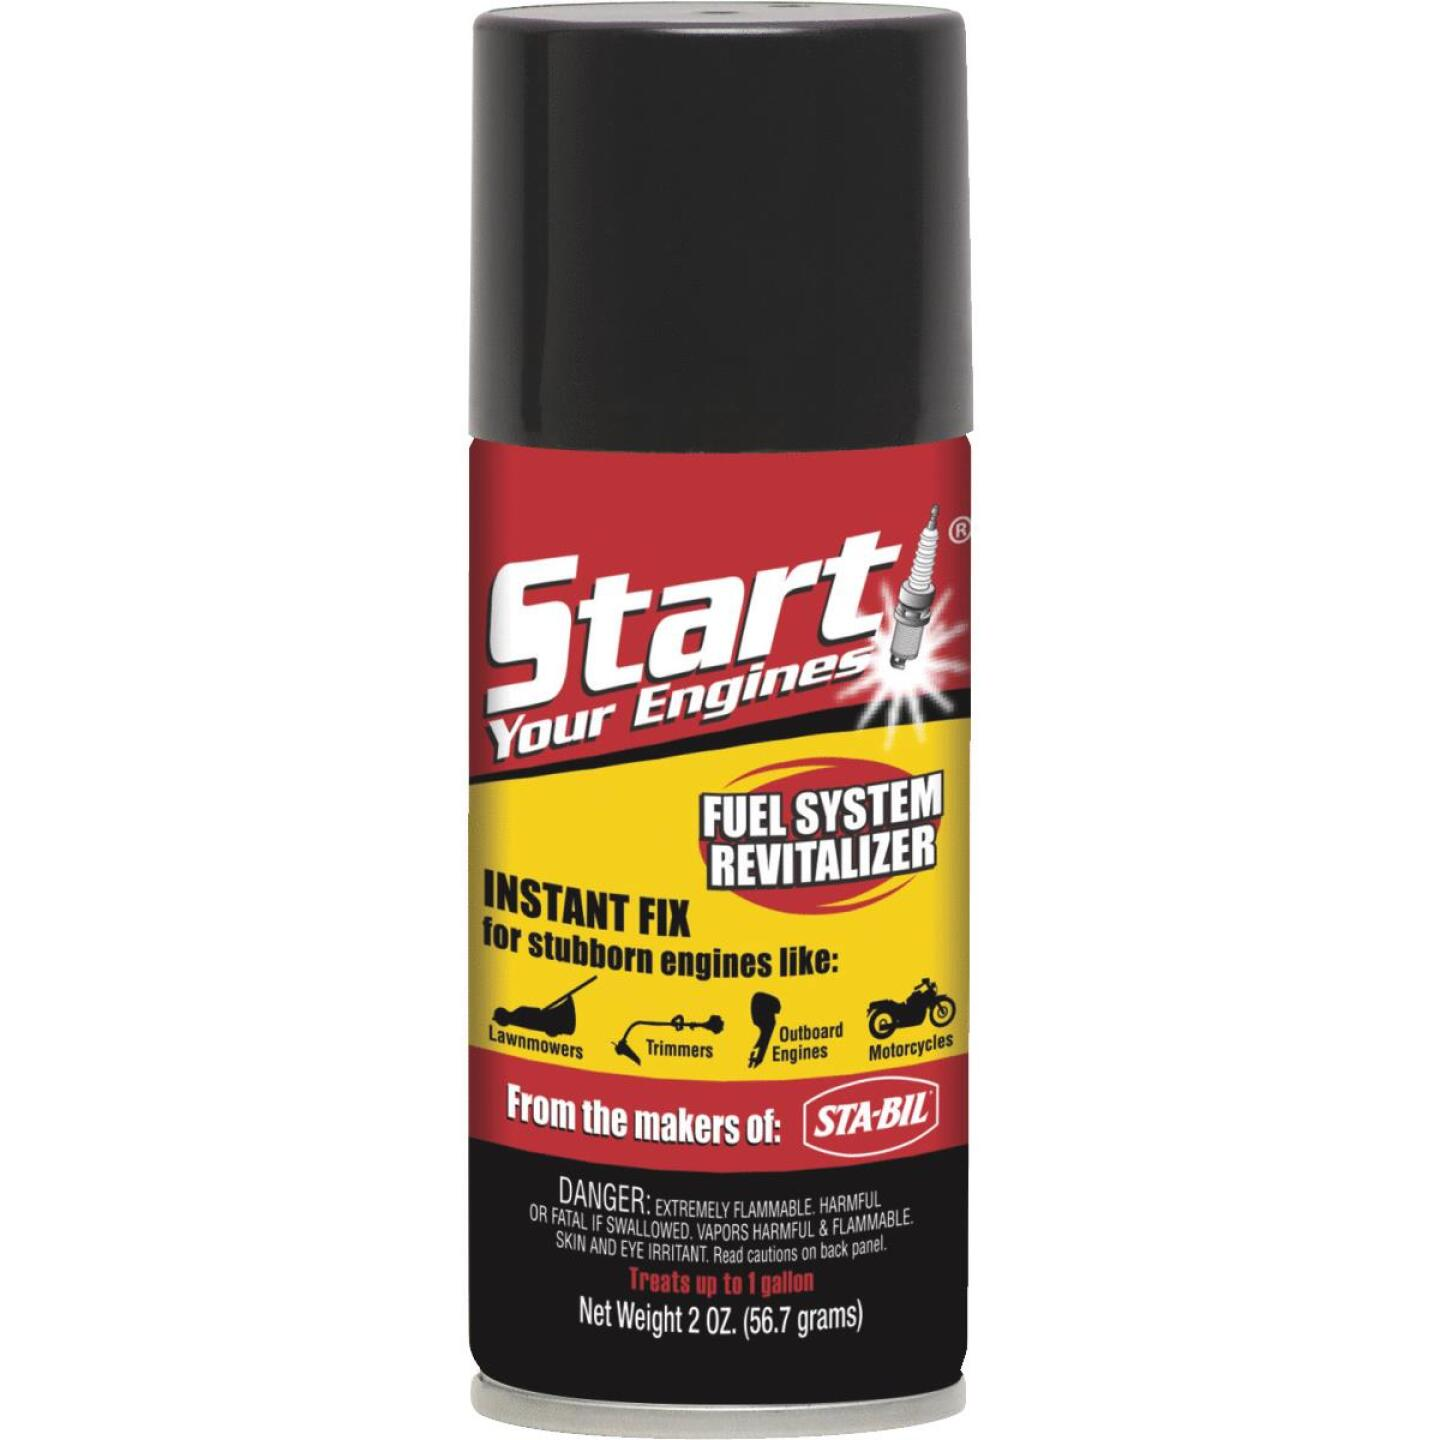 Start Your Engines 2 Oz. Starting Fluid Image 1